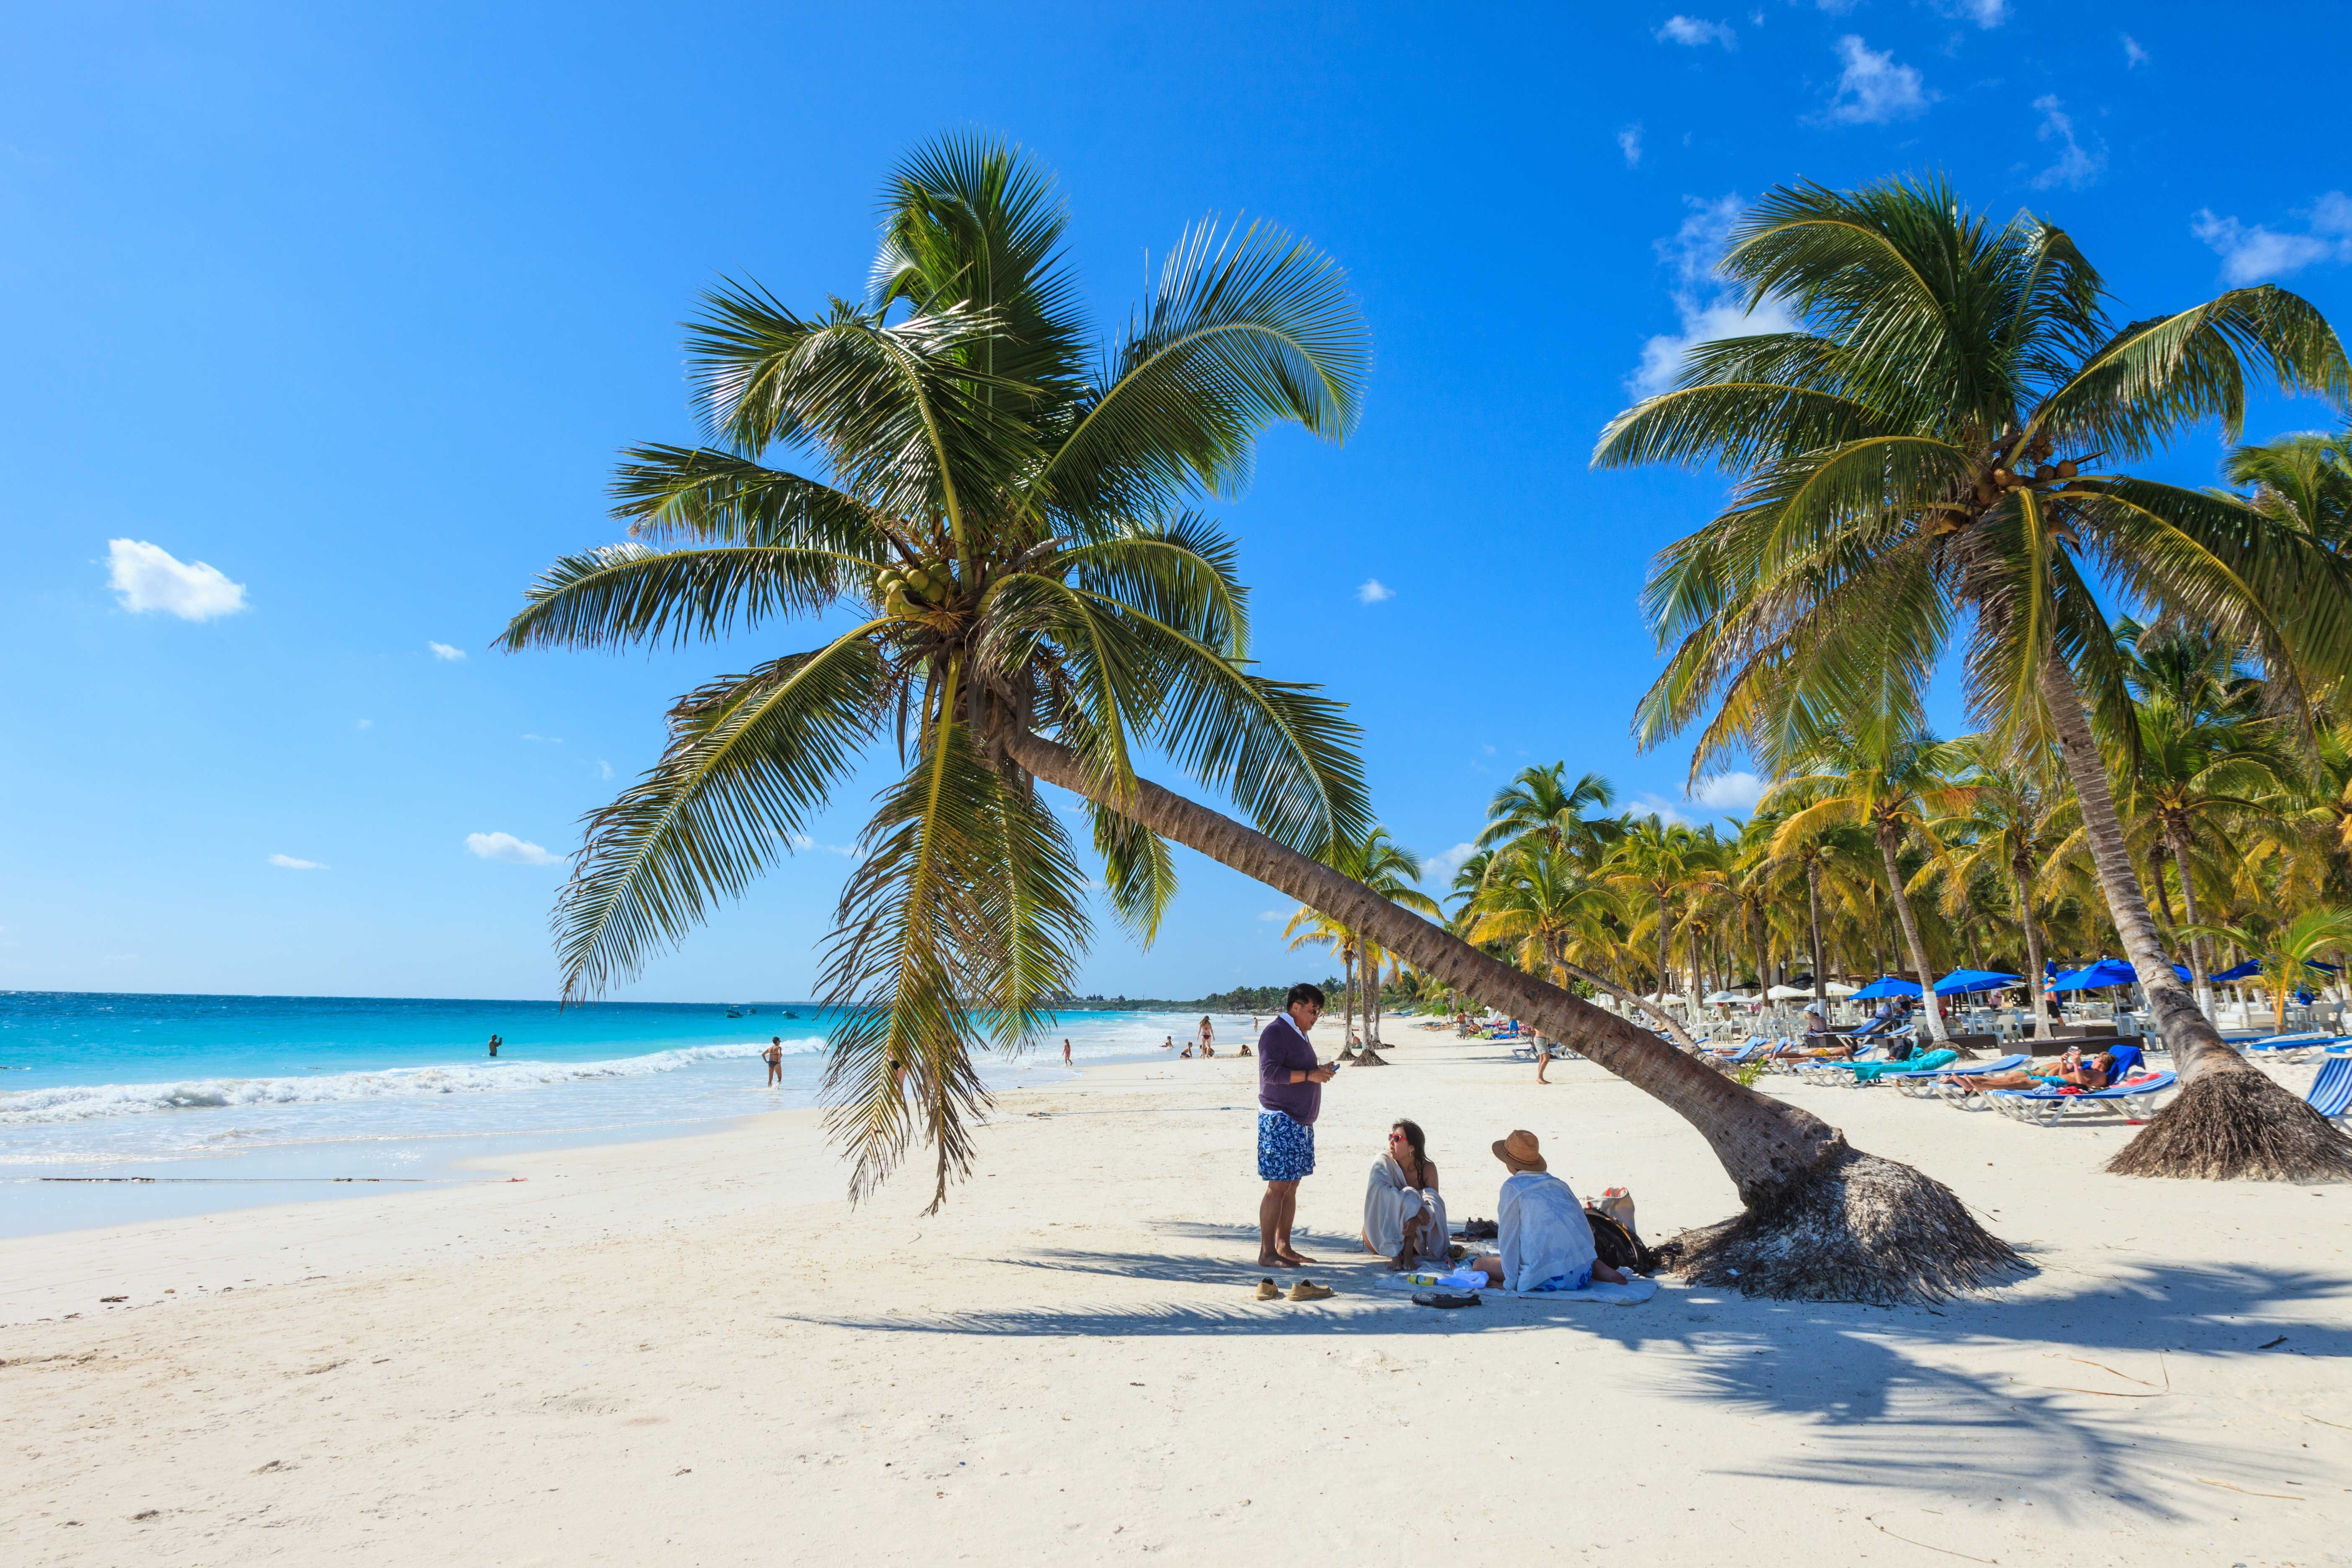 Tulum Hotels Raided By Police The Future Of Mexico S Hottest Beach